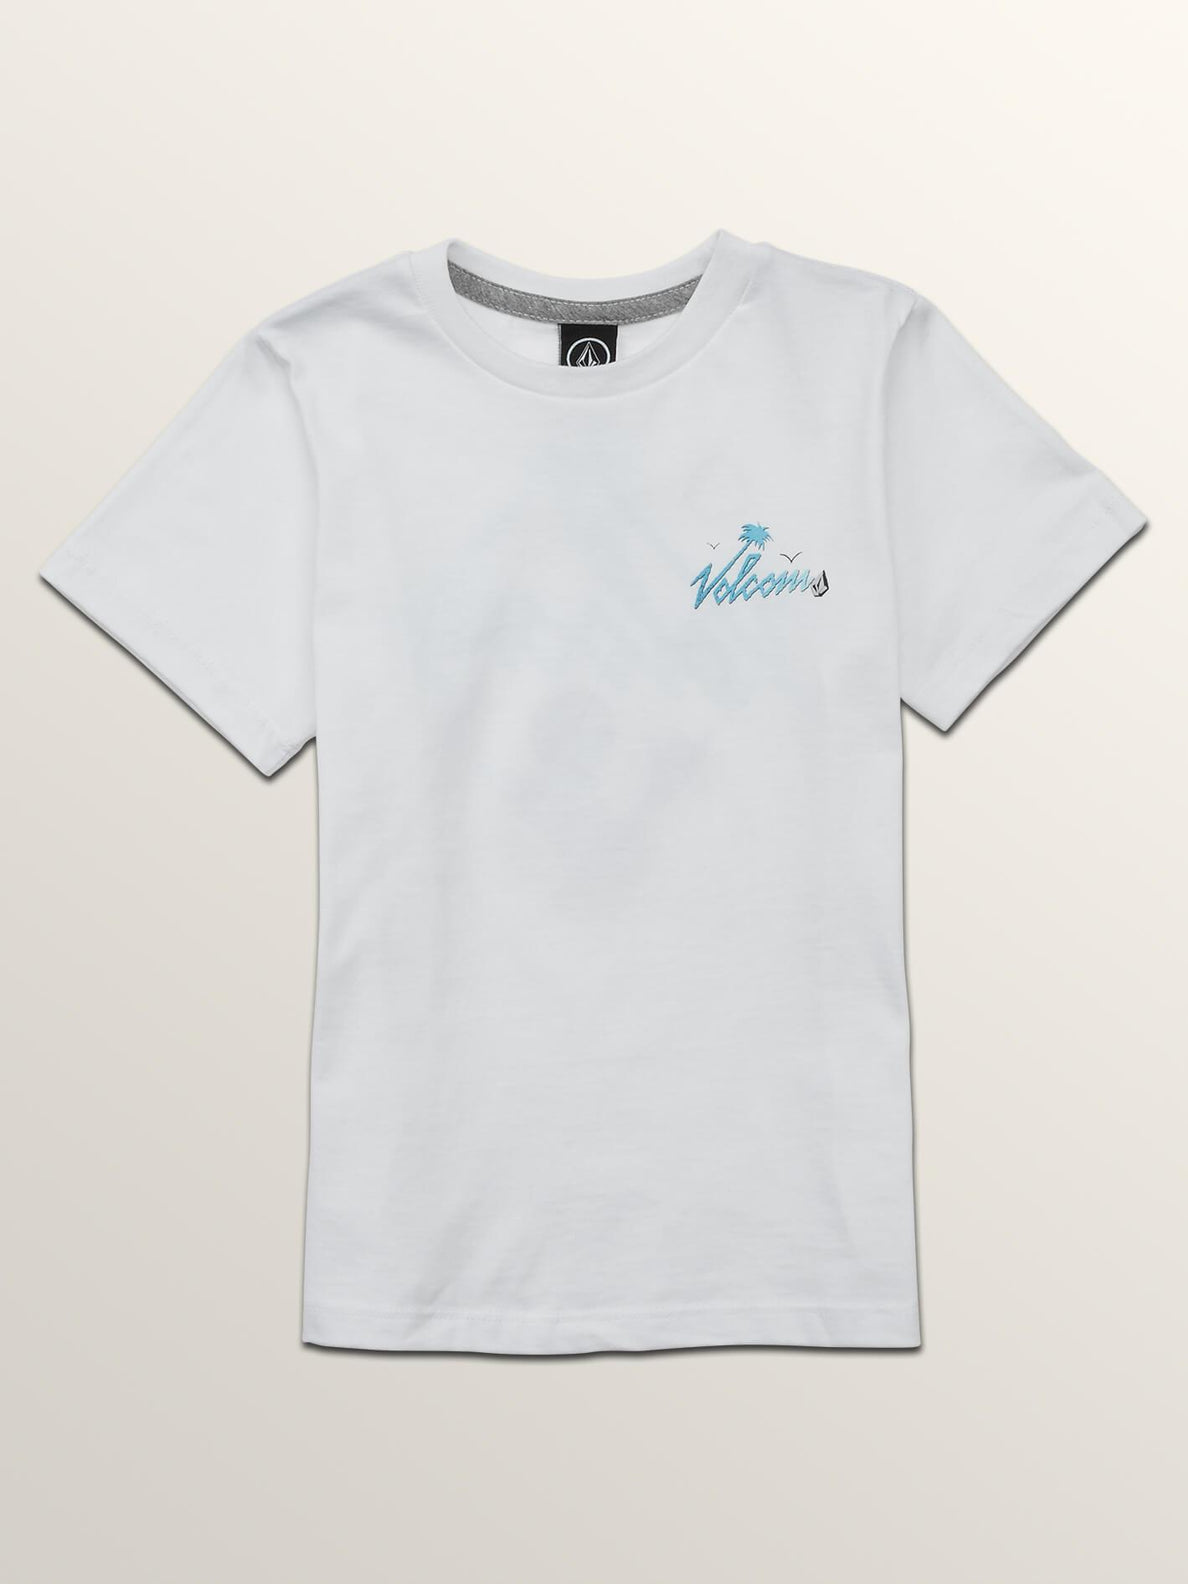 Little Boys Flexer Short Sleeve Tee In White, Front View